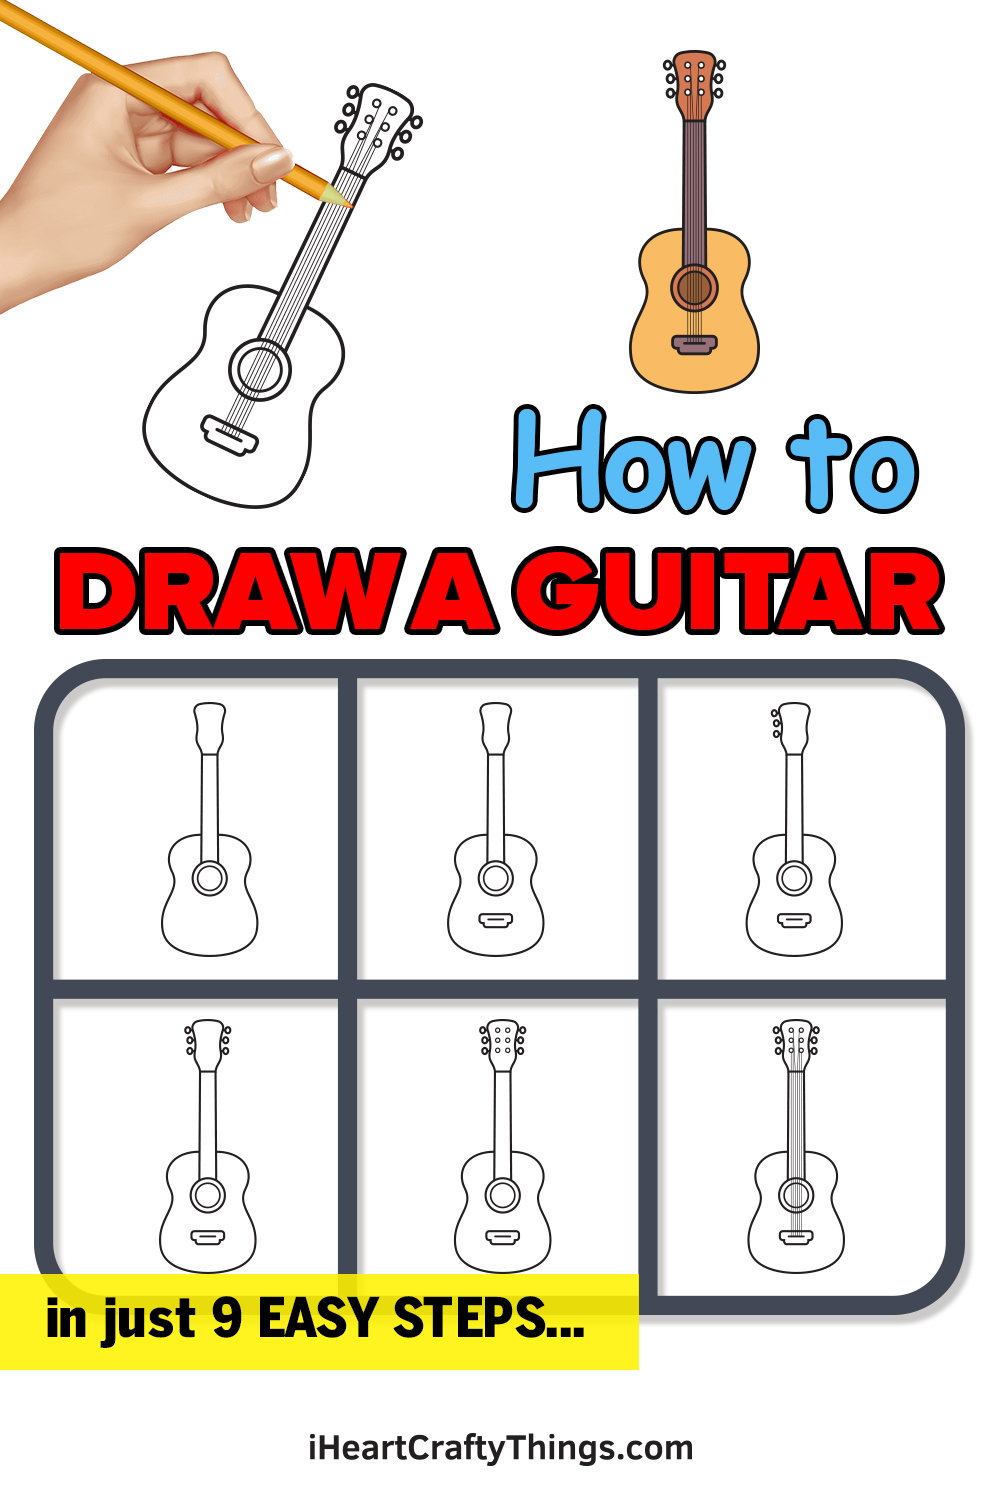 How to Draw a Guitar in 9 Easy Steps